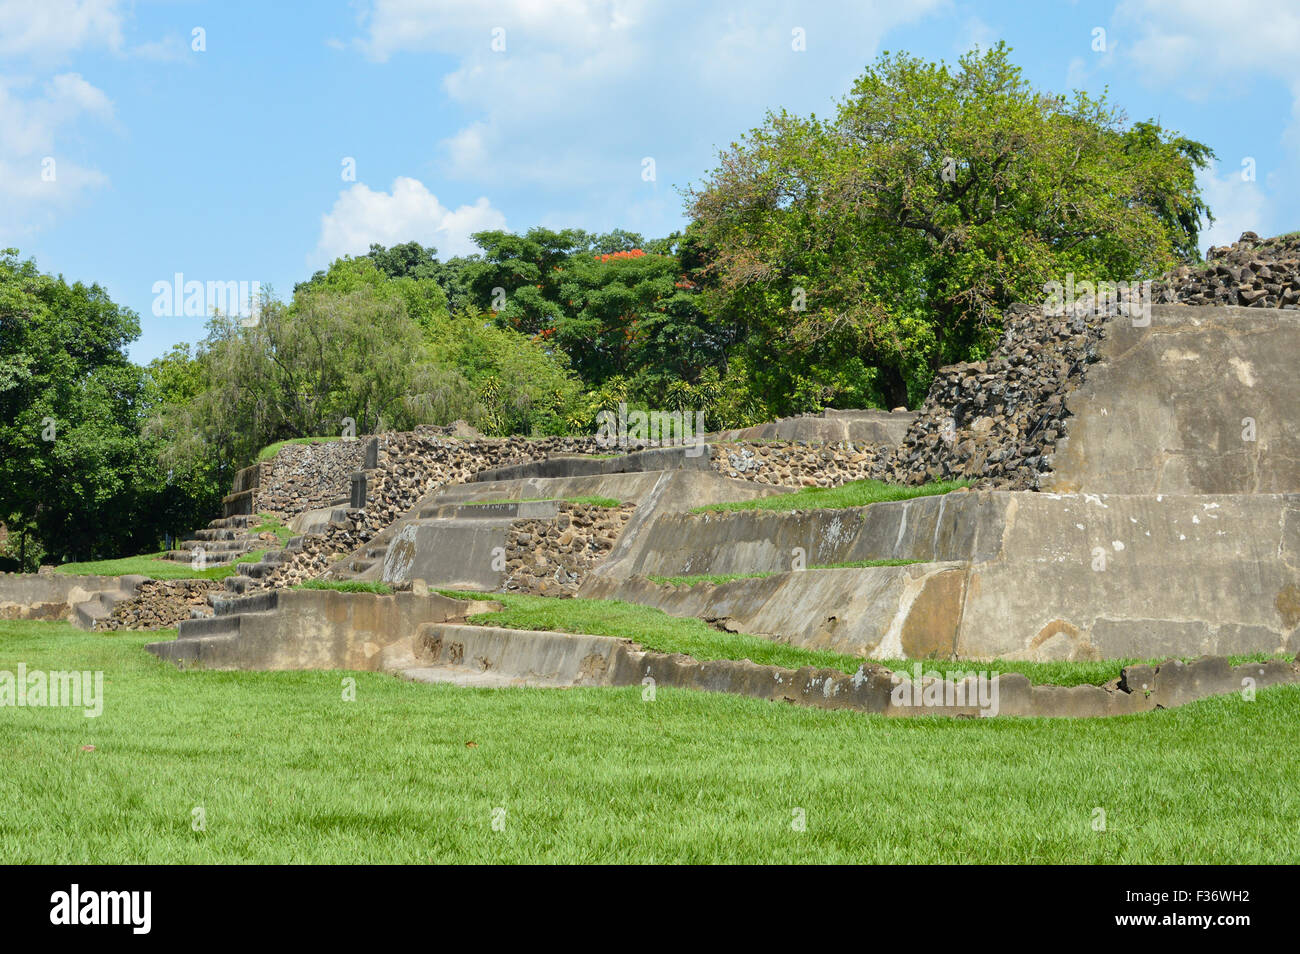 Tazumal archeological site of Maya civilization in El Salvador - Stock Image